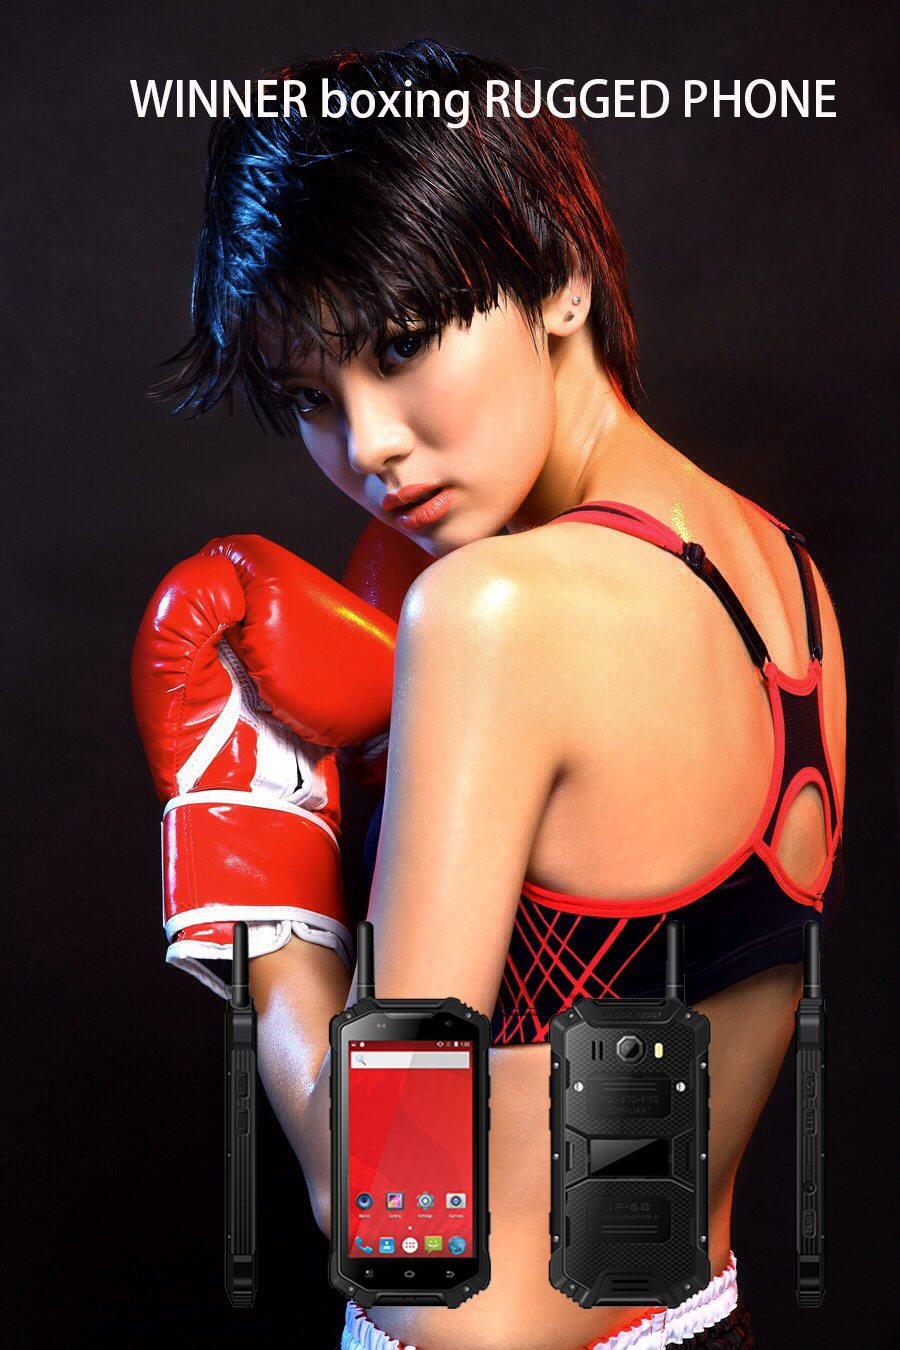 winner boxing rugged phone